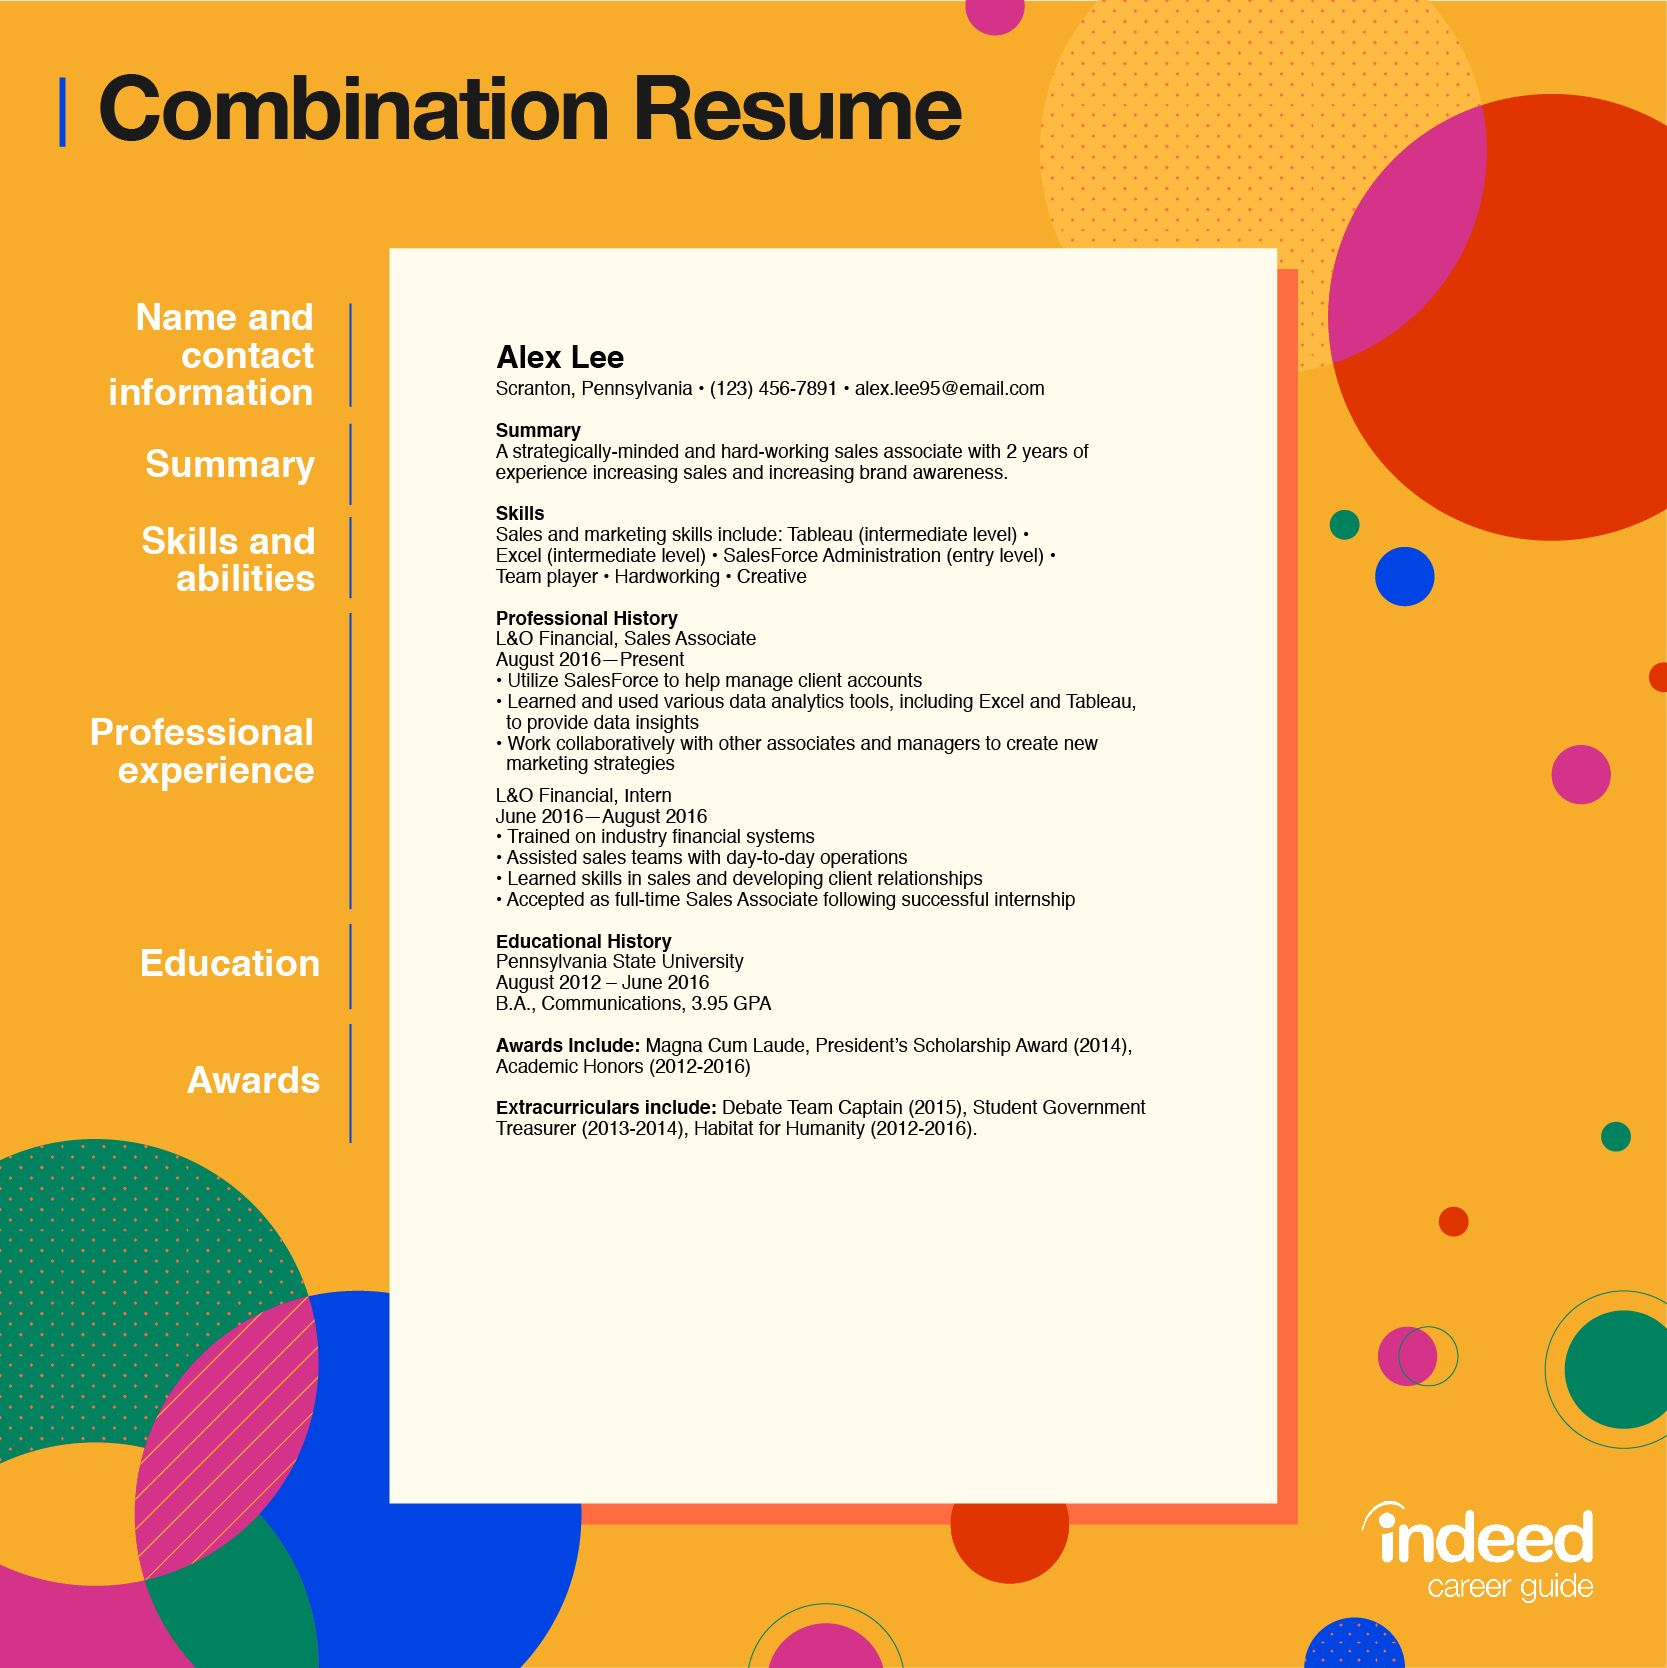 Combination resume tips and examples how to